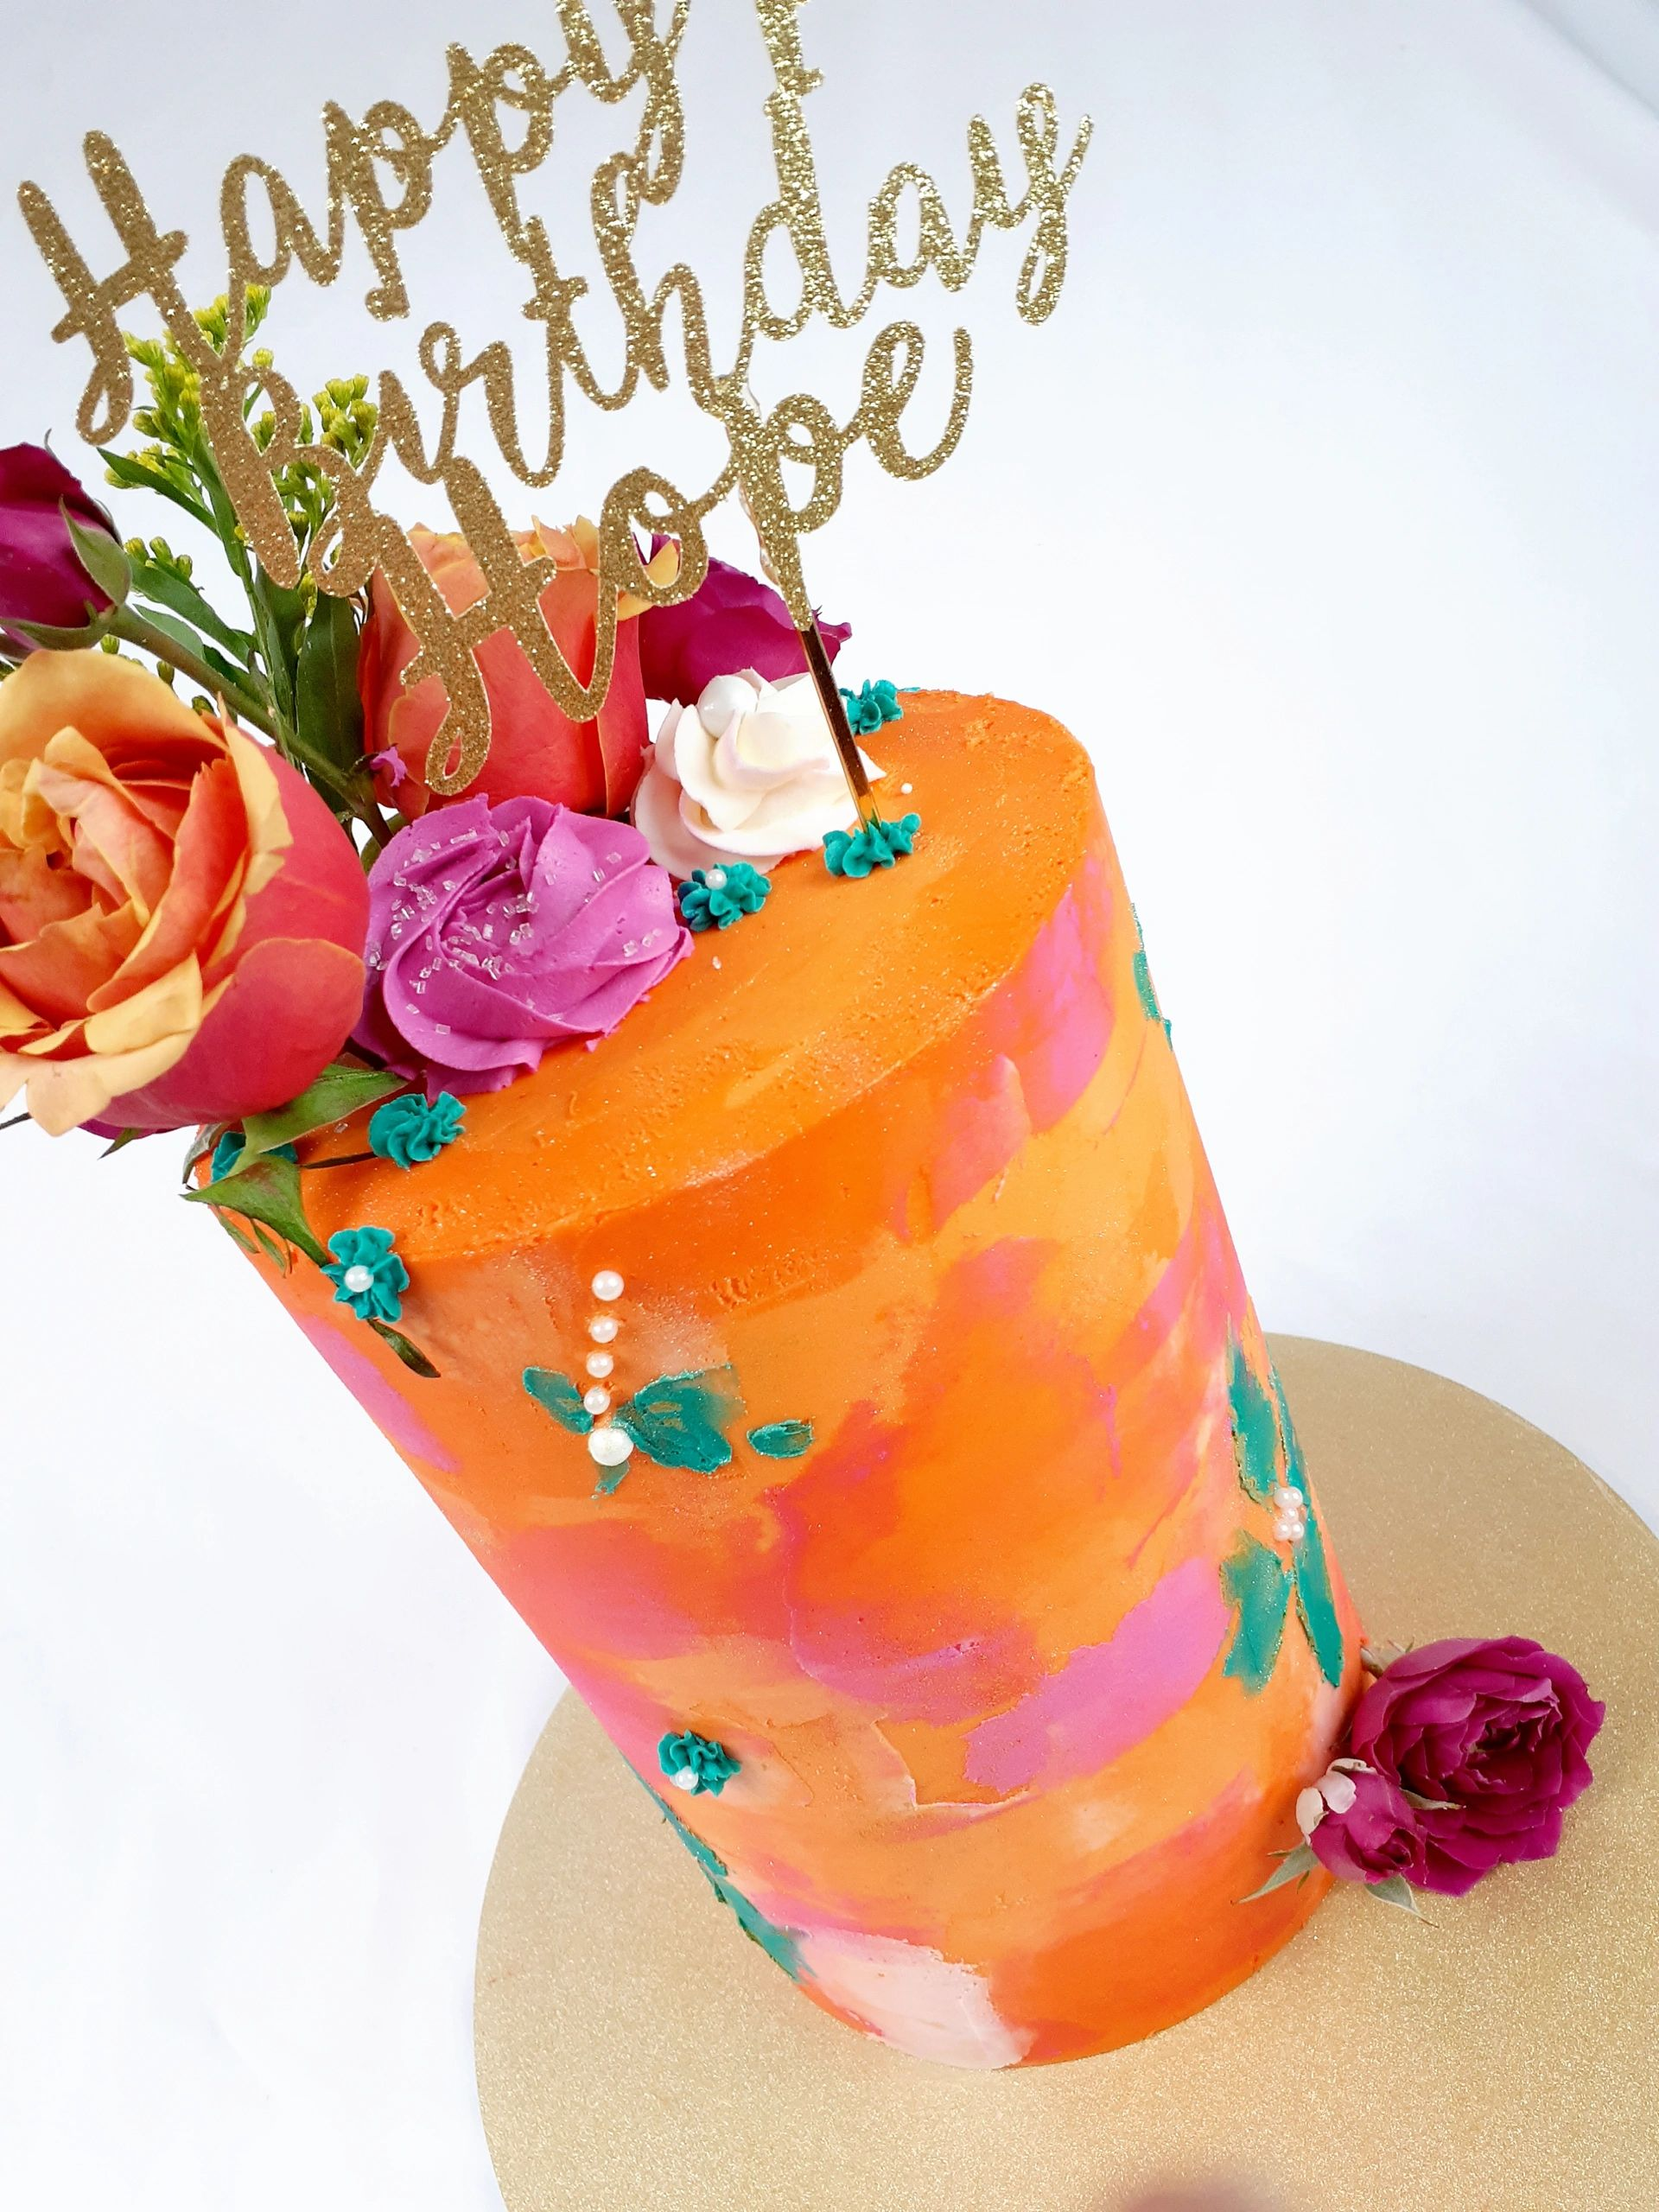 Spring Beauty is a 9in tall and 6in wide fresh beauty funfetti flavored cake with vanilla buttercrem